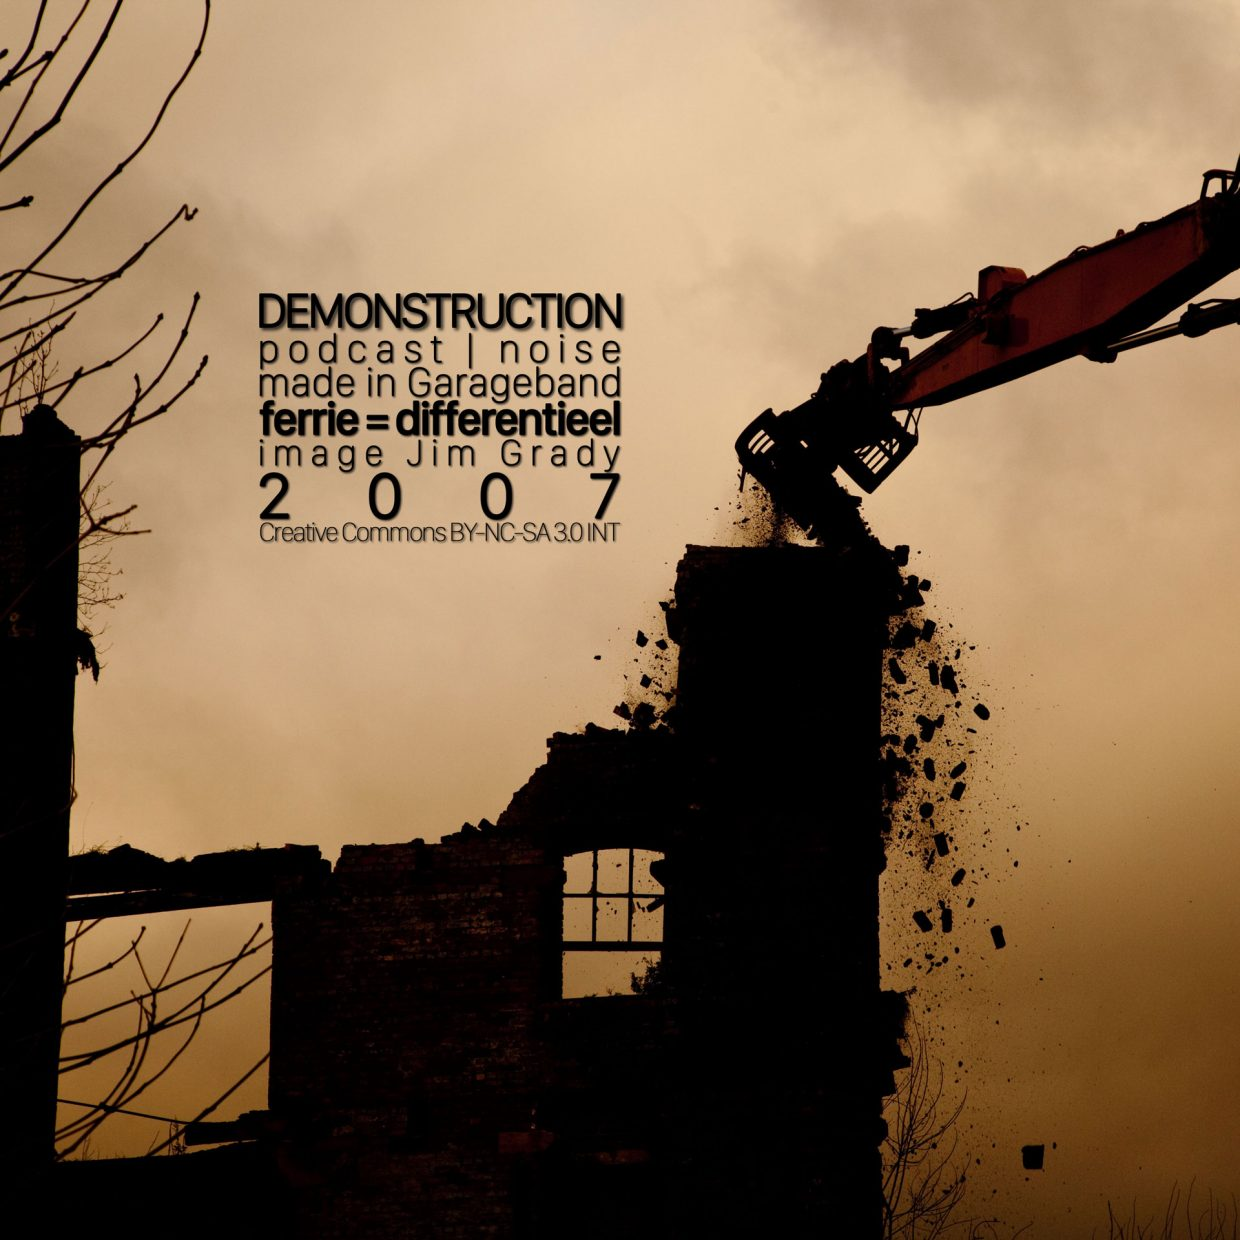 Demonstruction podcast cover